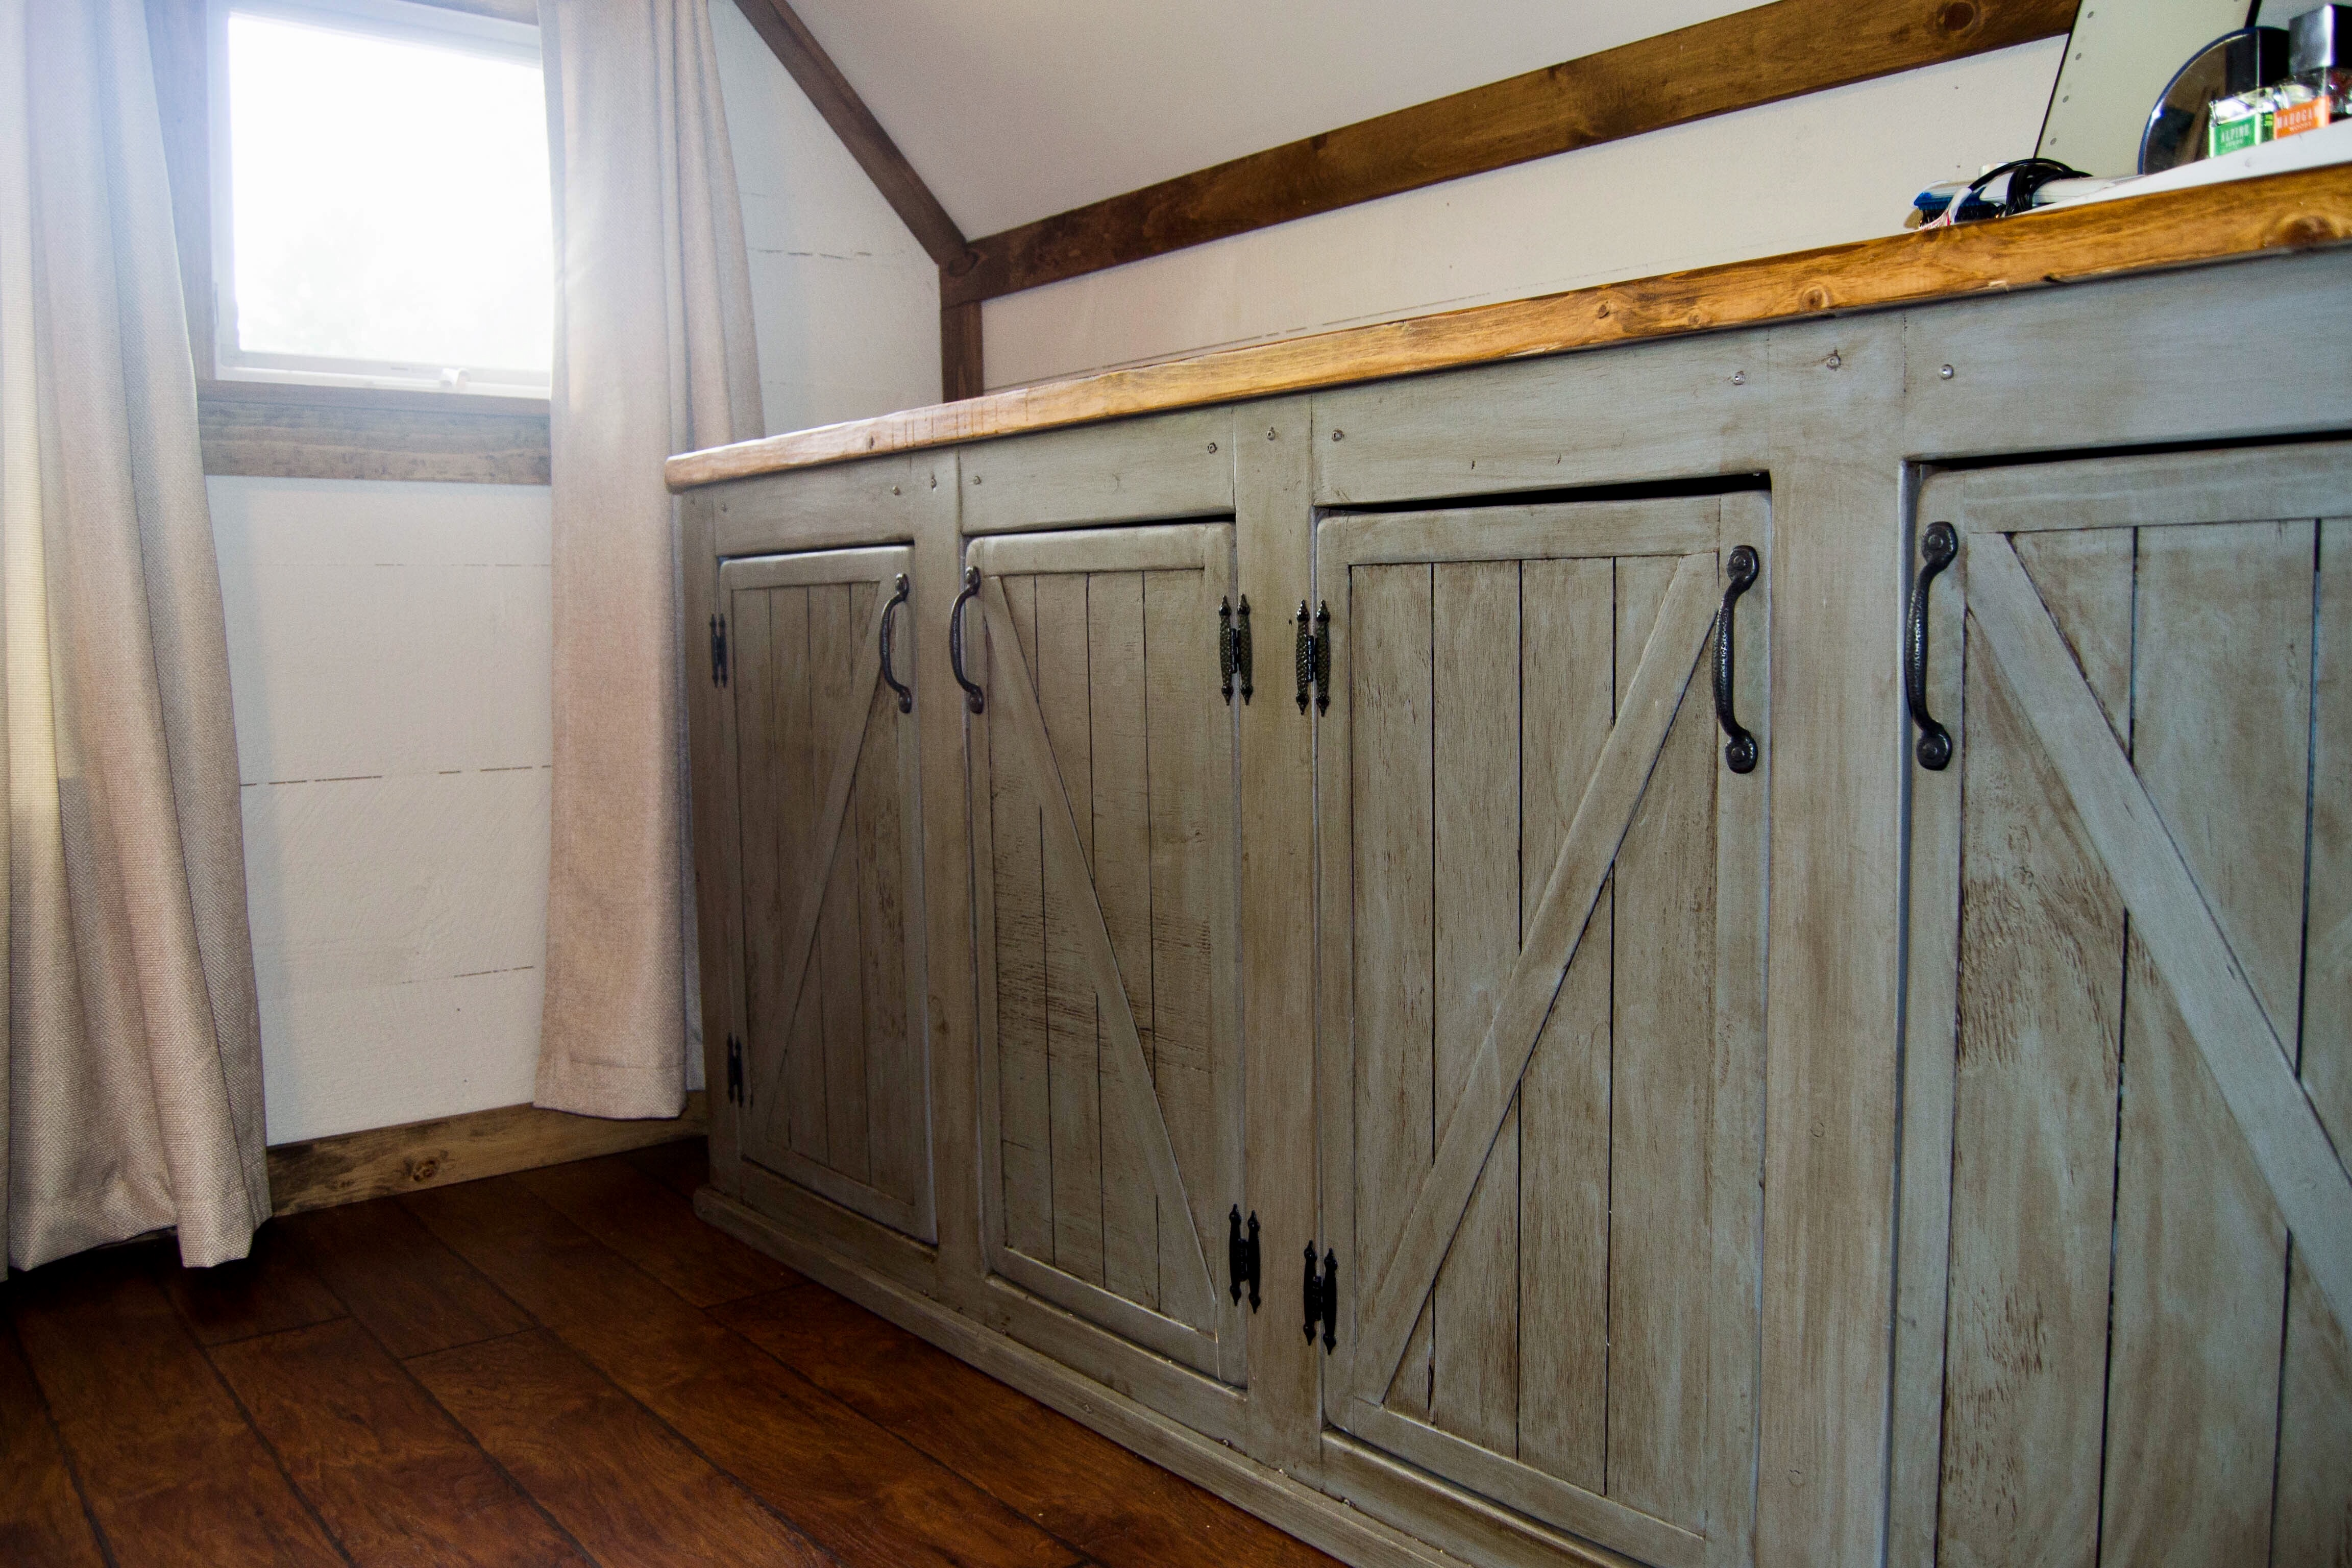 Ana White Scrapped The Sliding Barn Doors Rustic